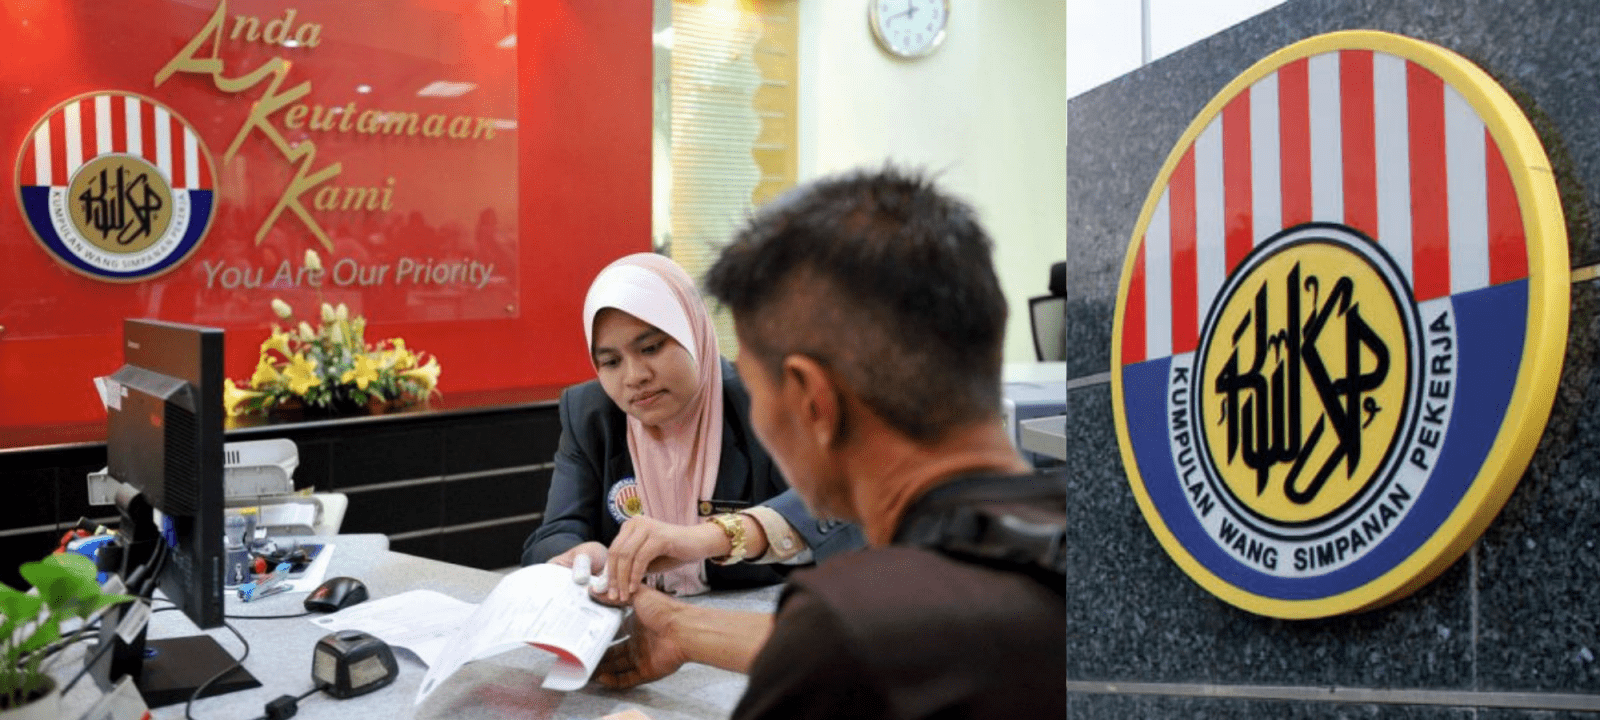 Can I Be An EPF Member And Enjoy The Benefits Even If I'm Self-Employed? Yes, You Can